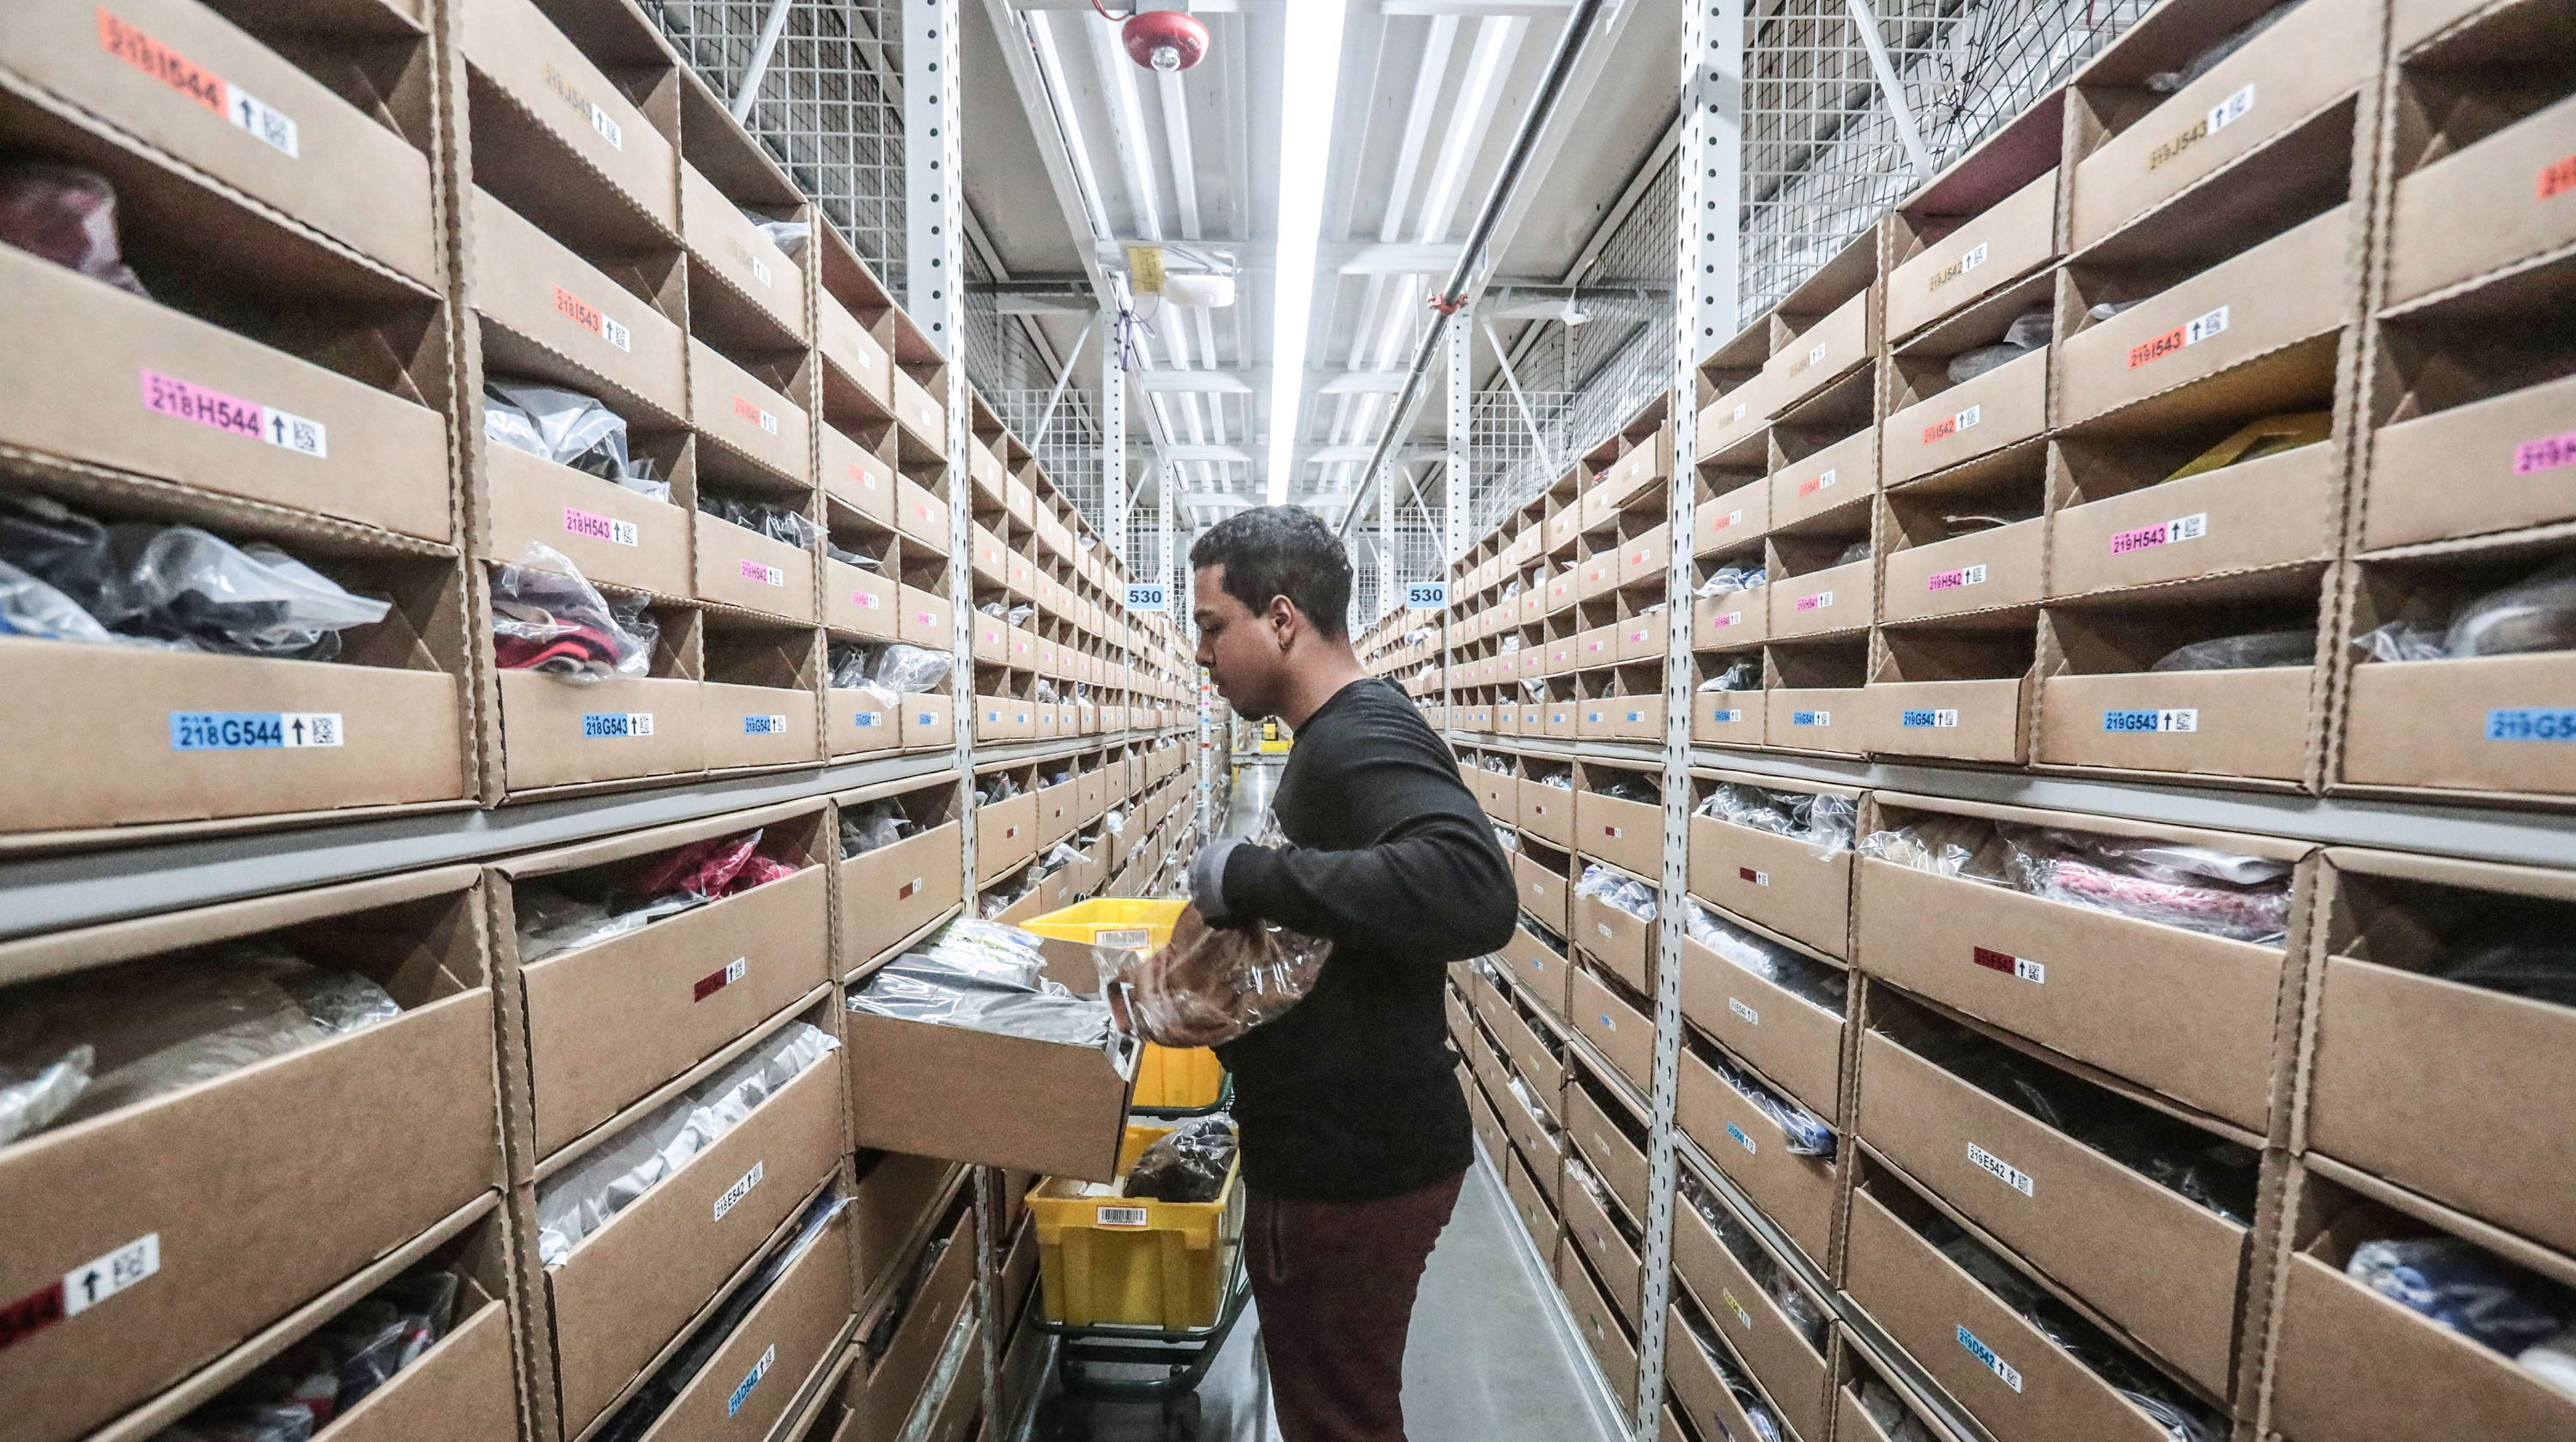 Inside an Amazon warehouse in the final days before Christmas